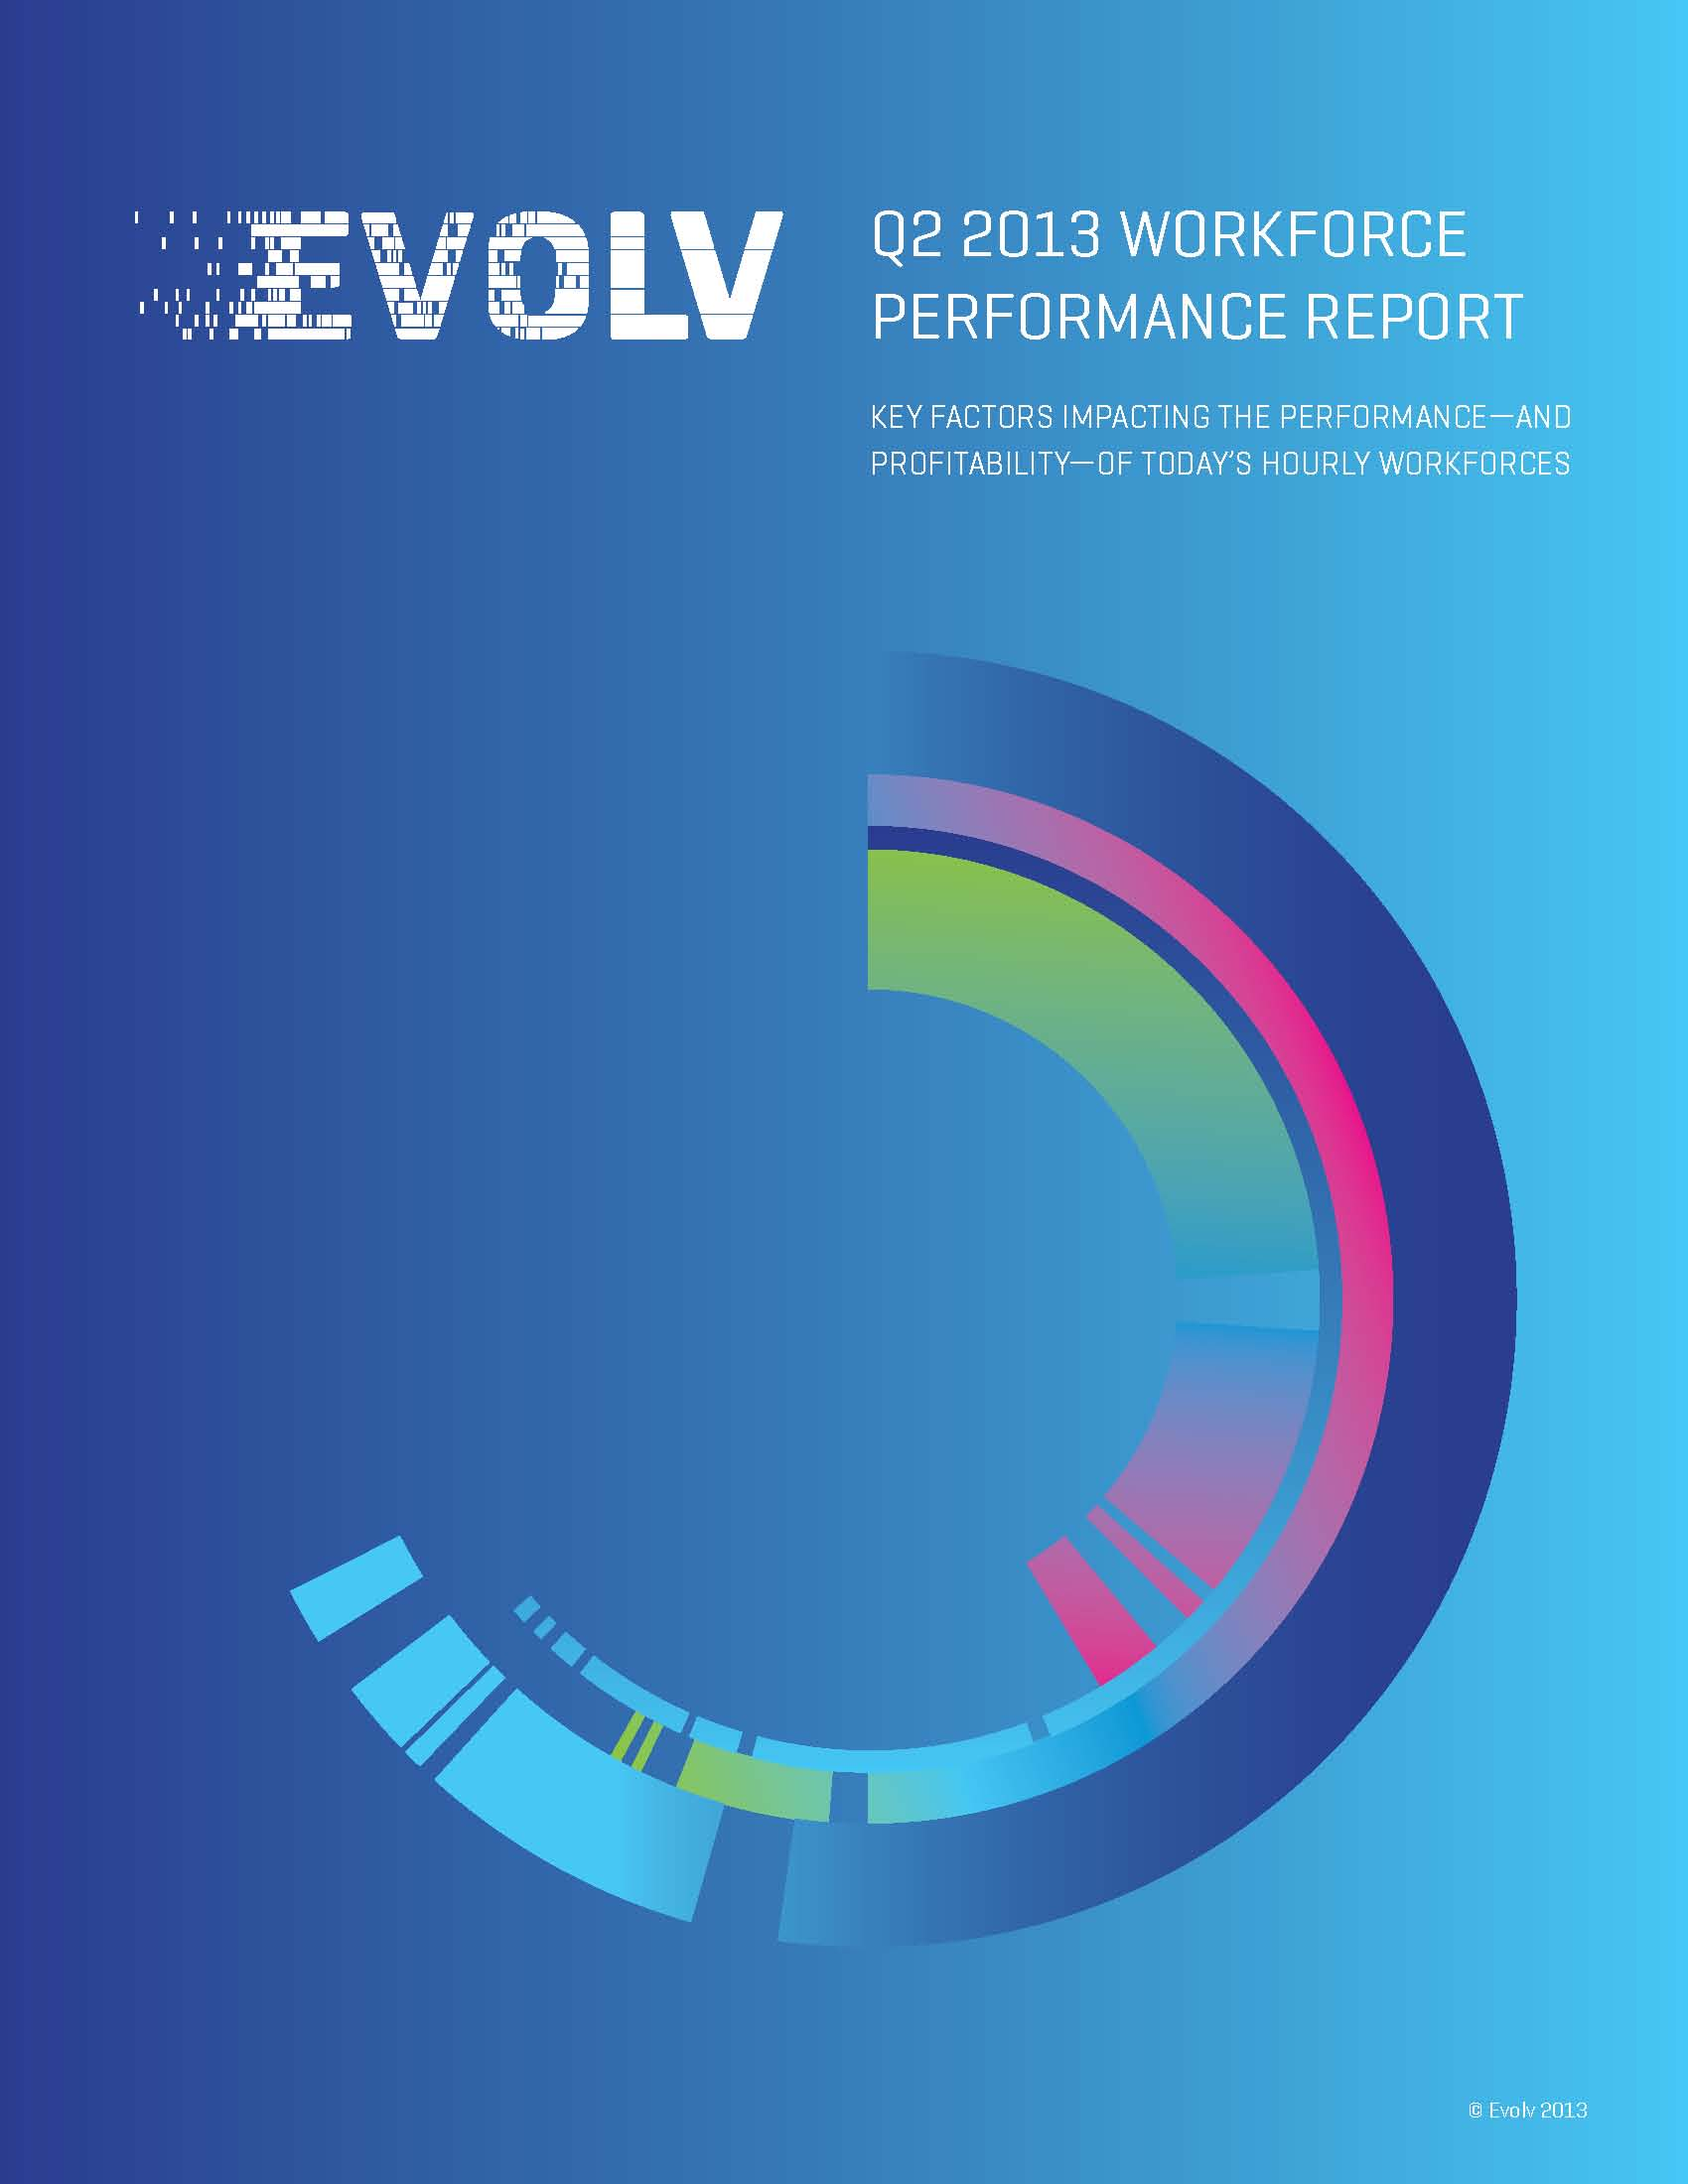 2013 Q2 Workforce Performance Report